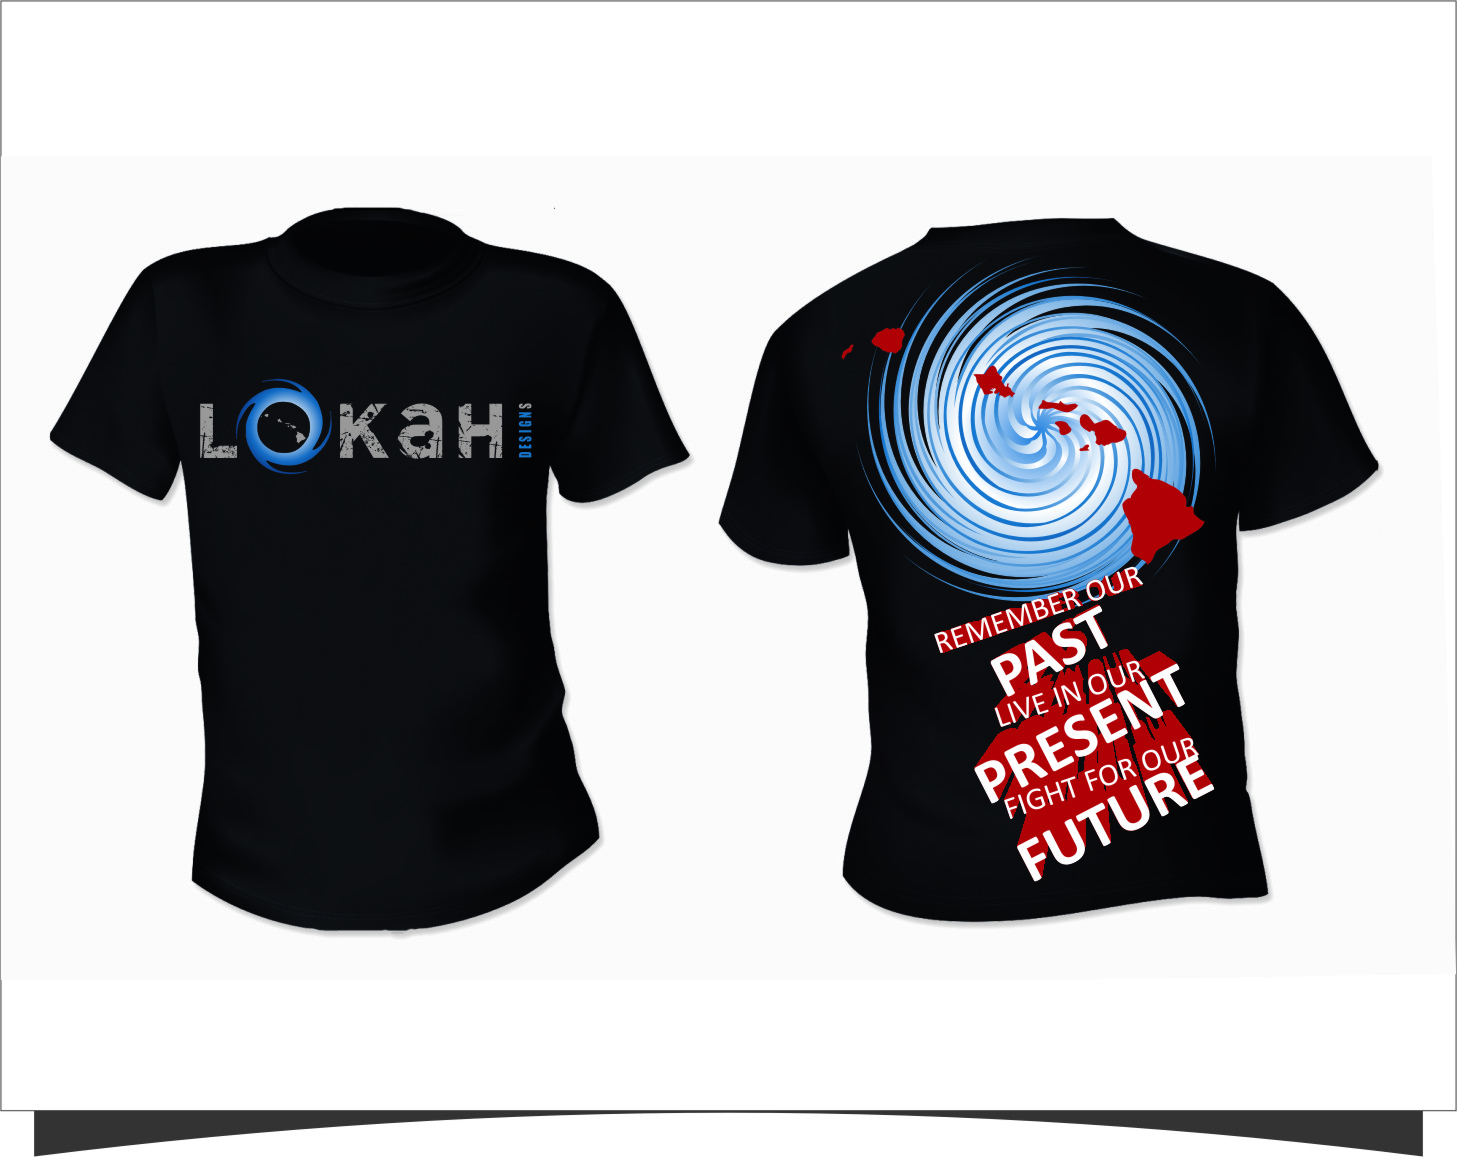 Clothing Design by Ngepet_art - Entry No. 155 in the Clothing Design Contest Creative Clothing Design for LOKAHI designs.